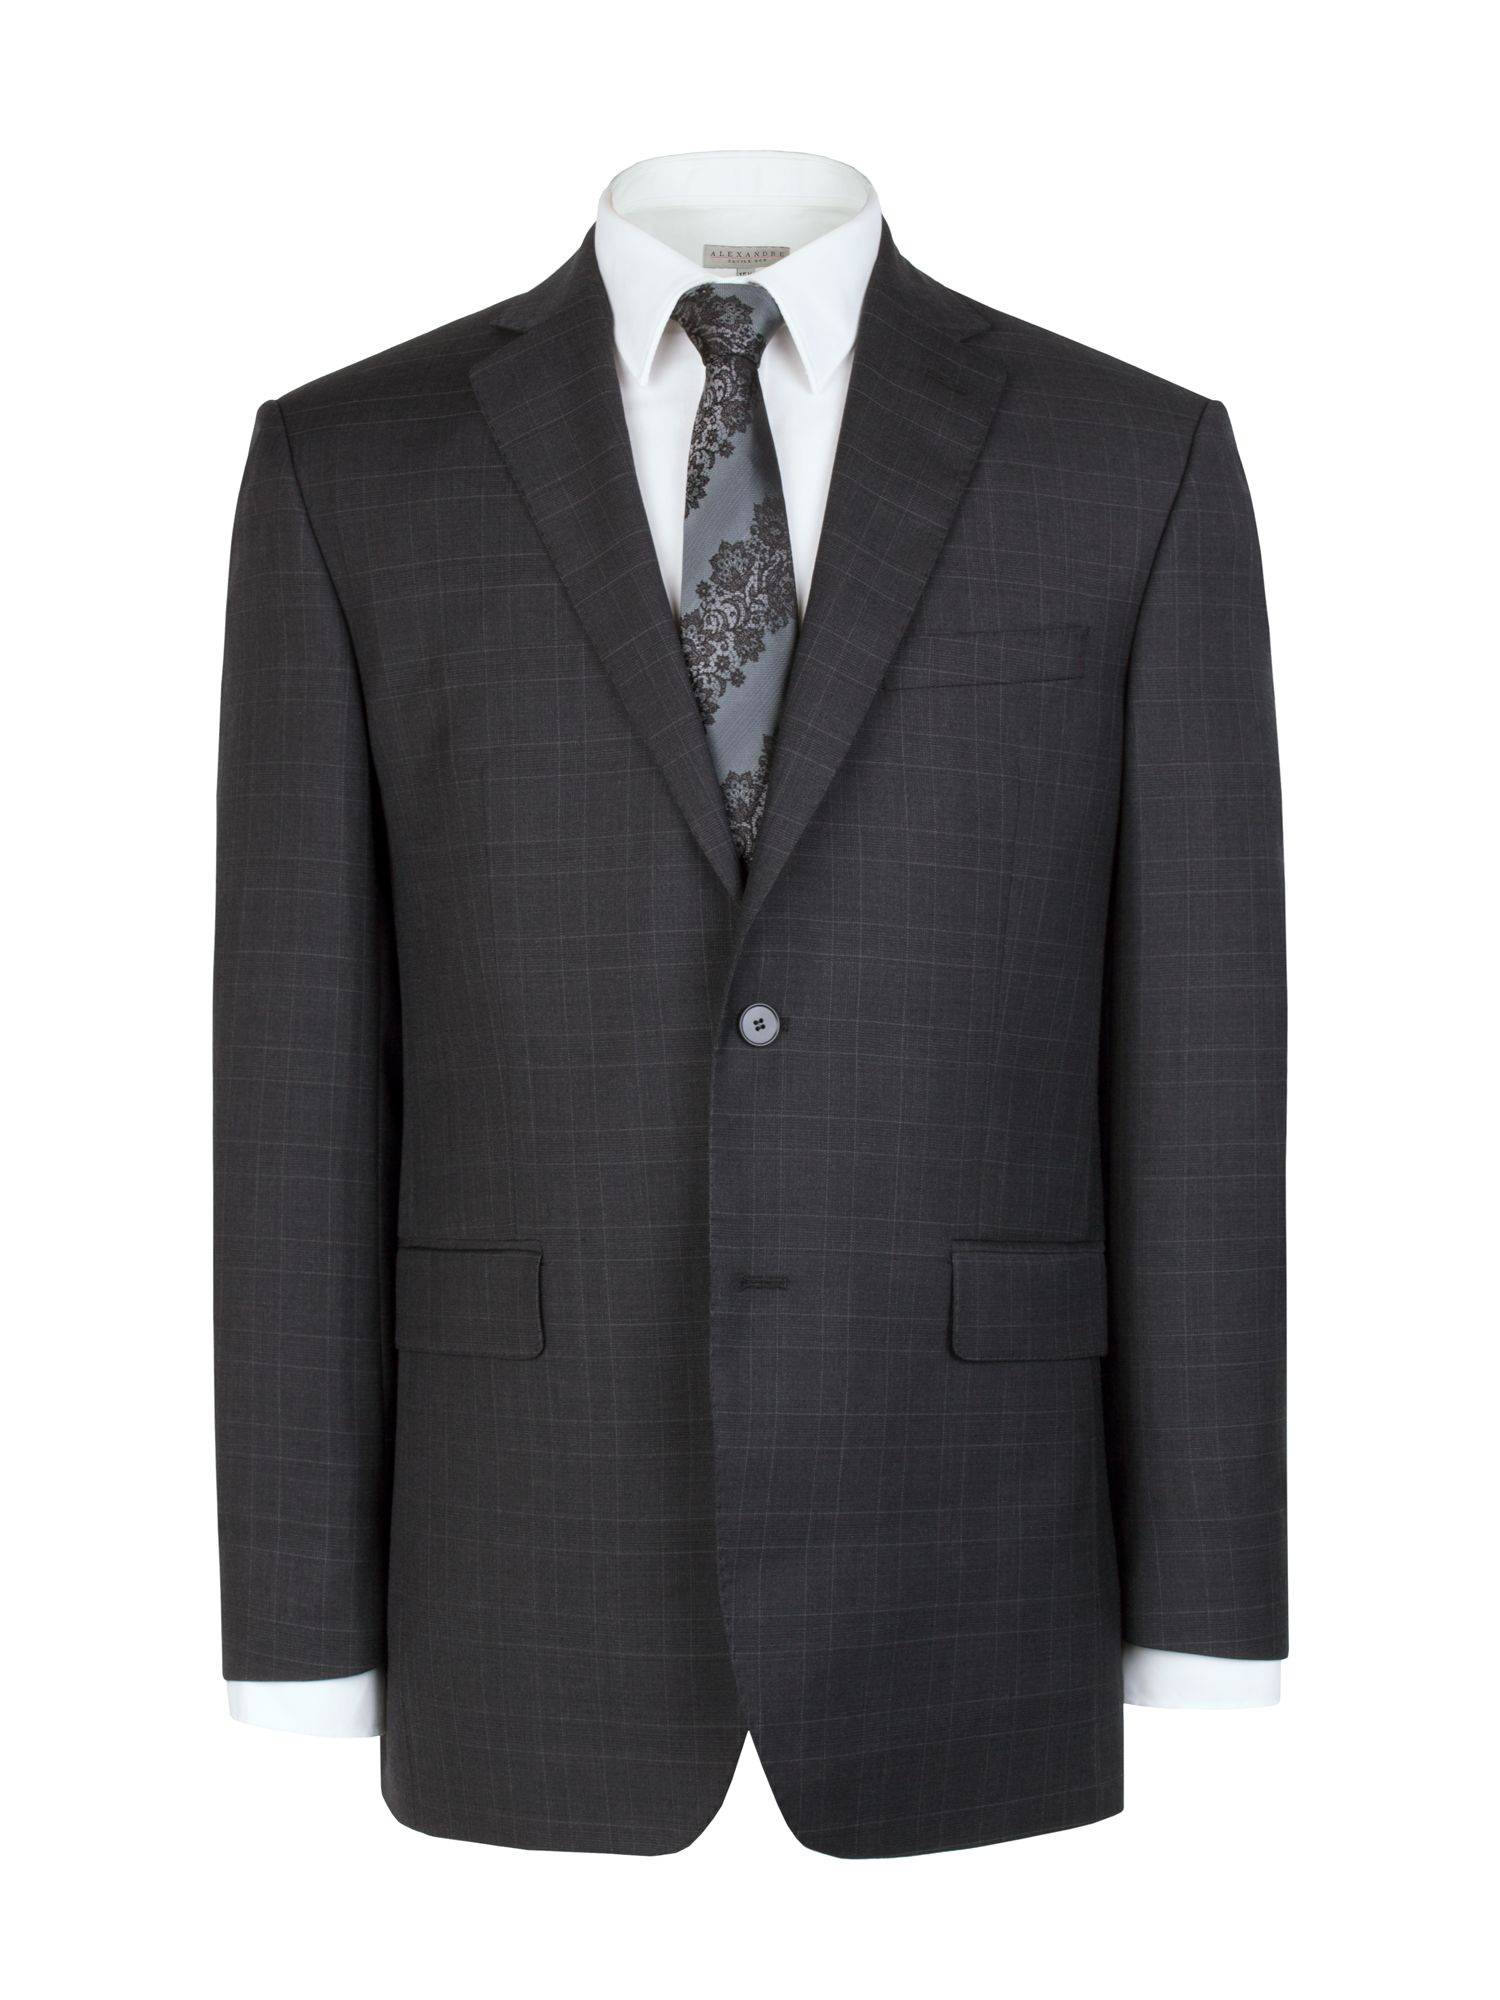 Dark grey check jacket